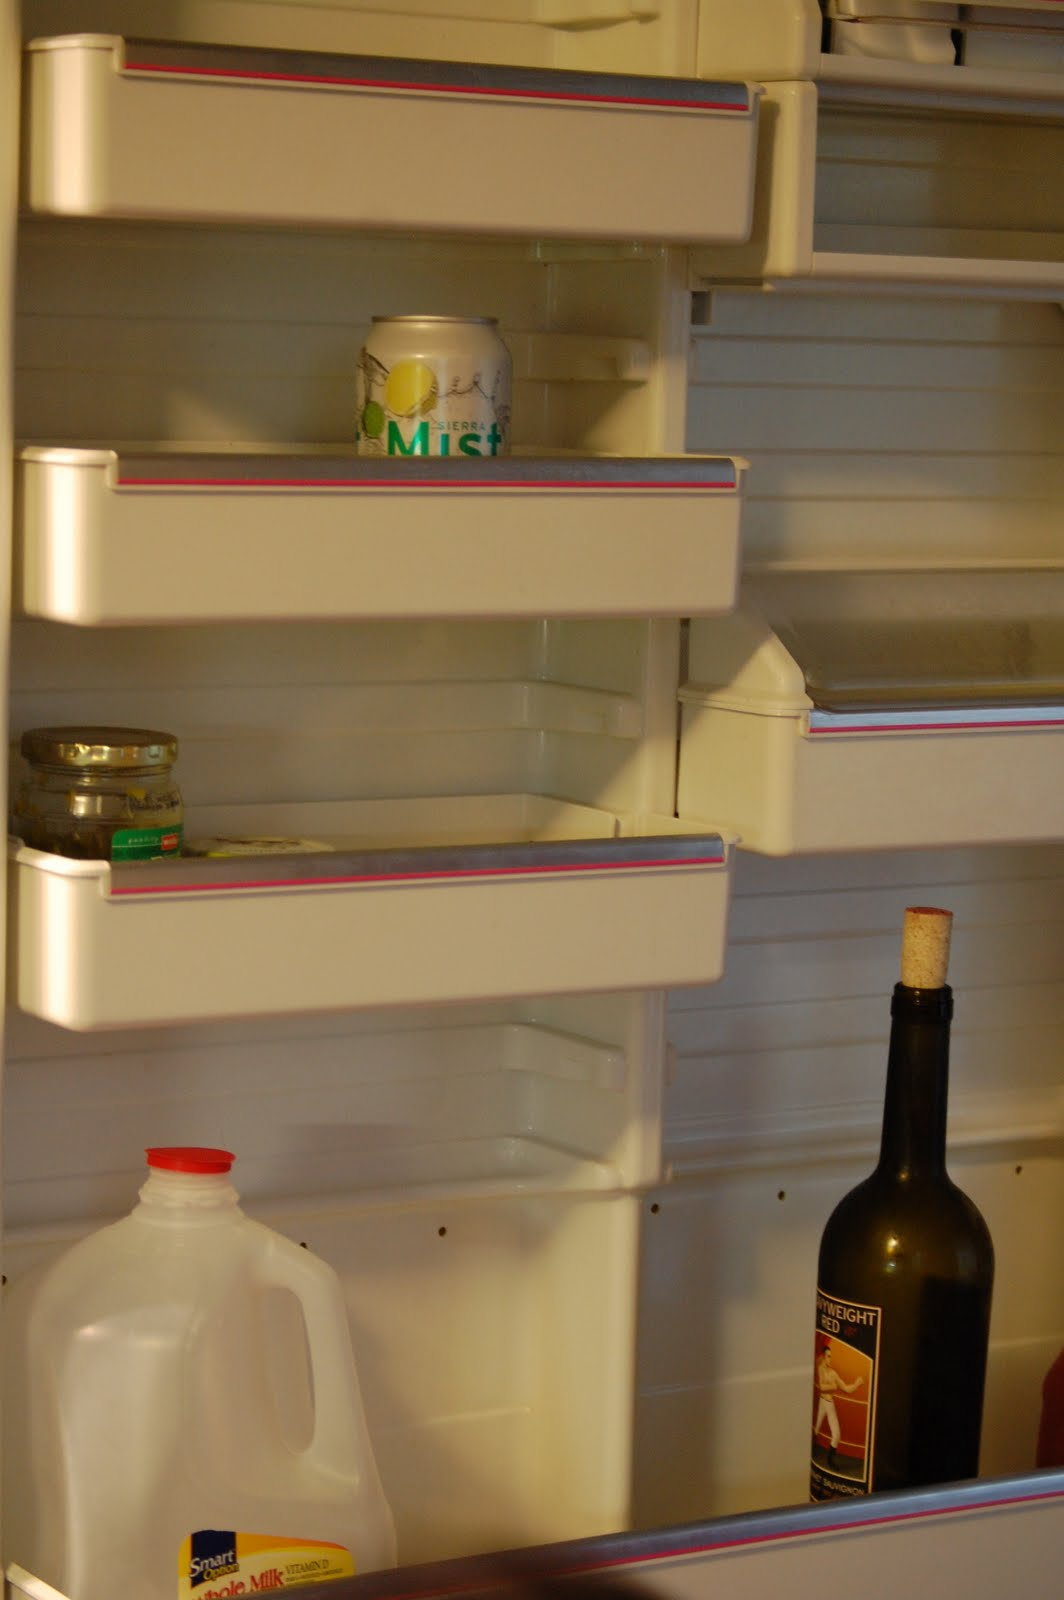 how to clean fridge with vinegar